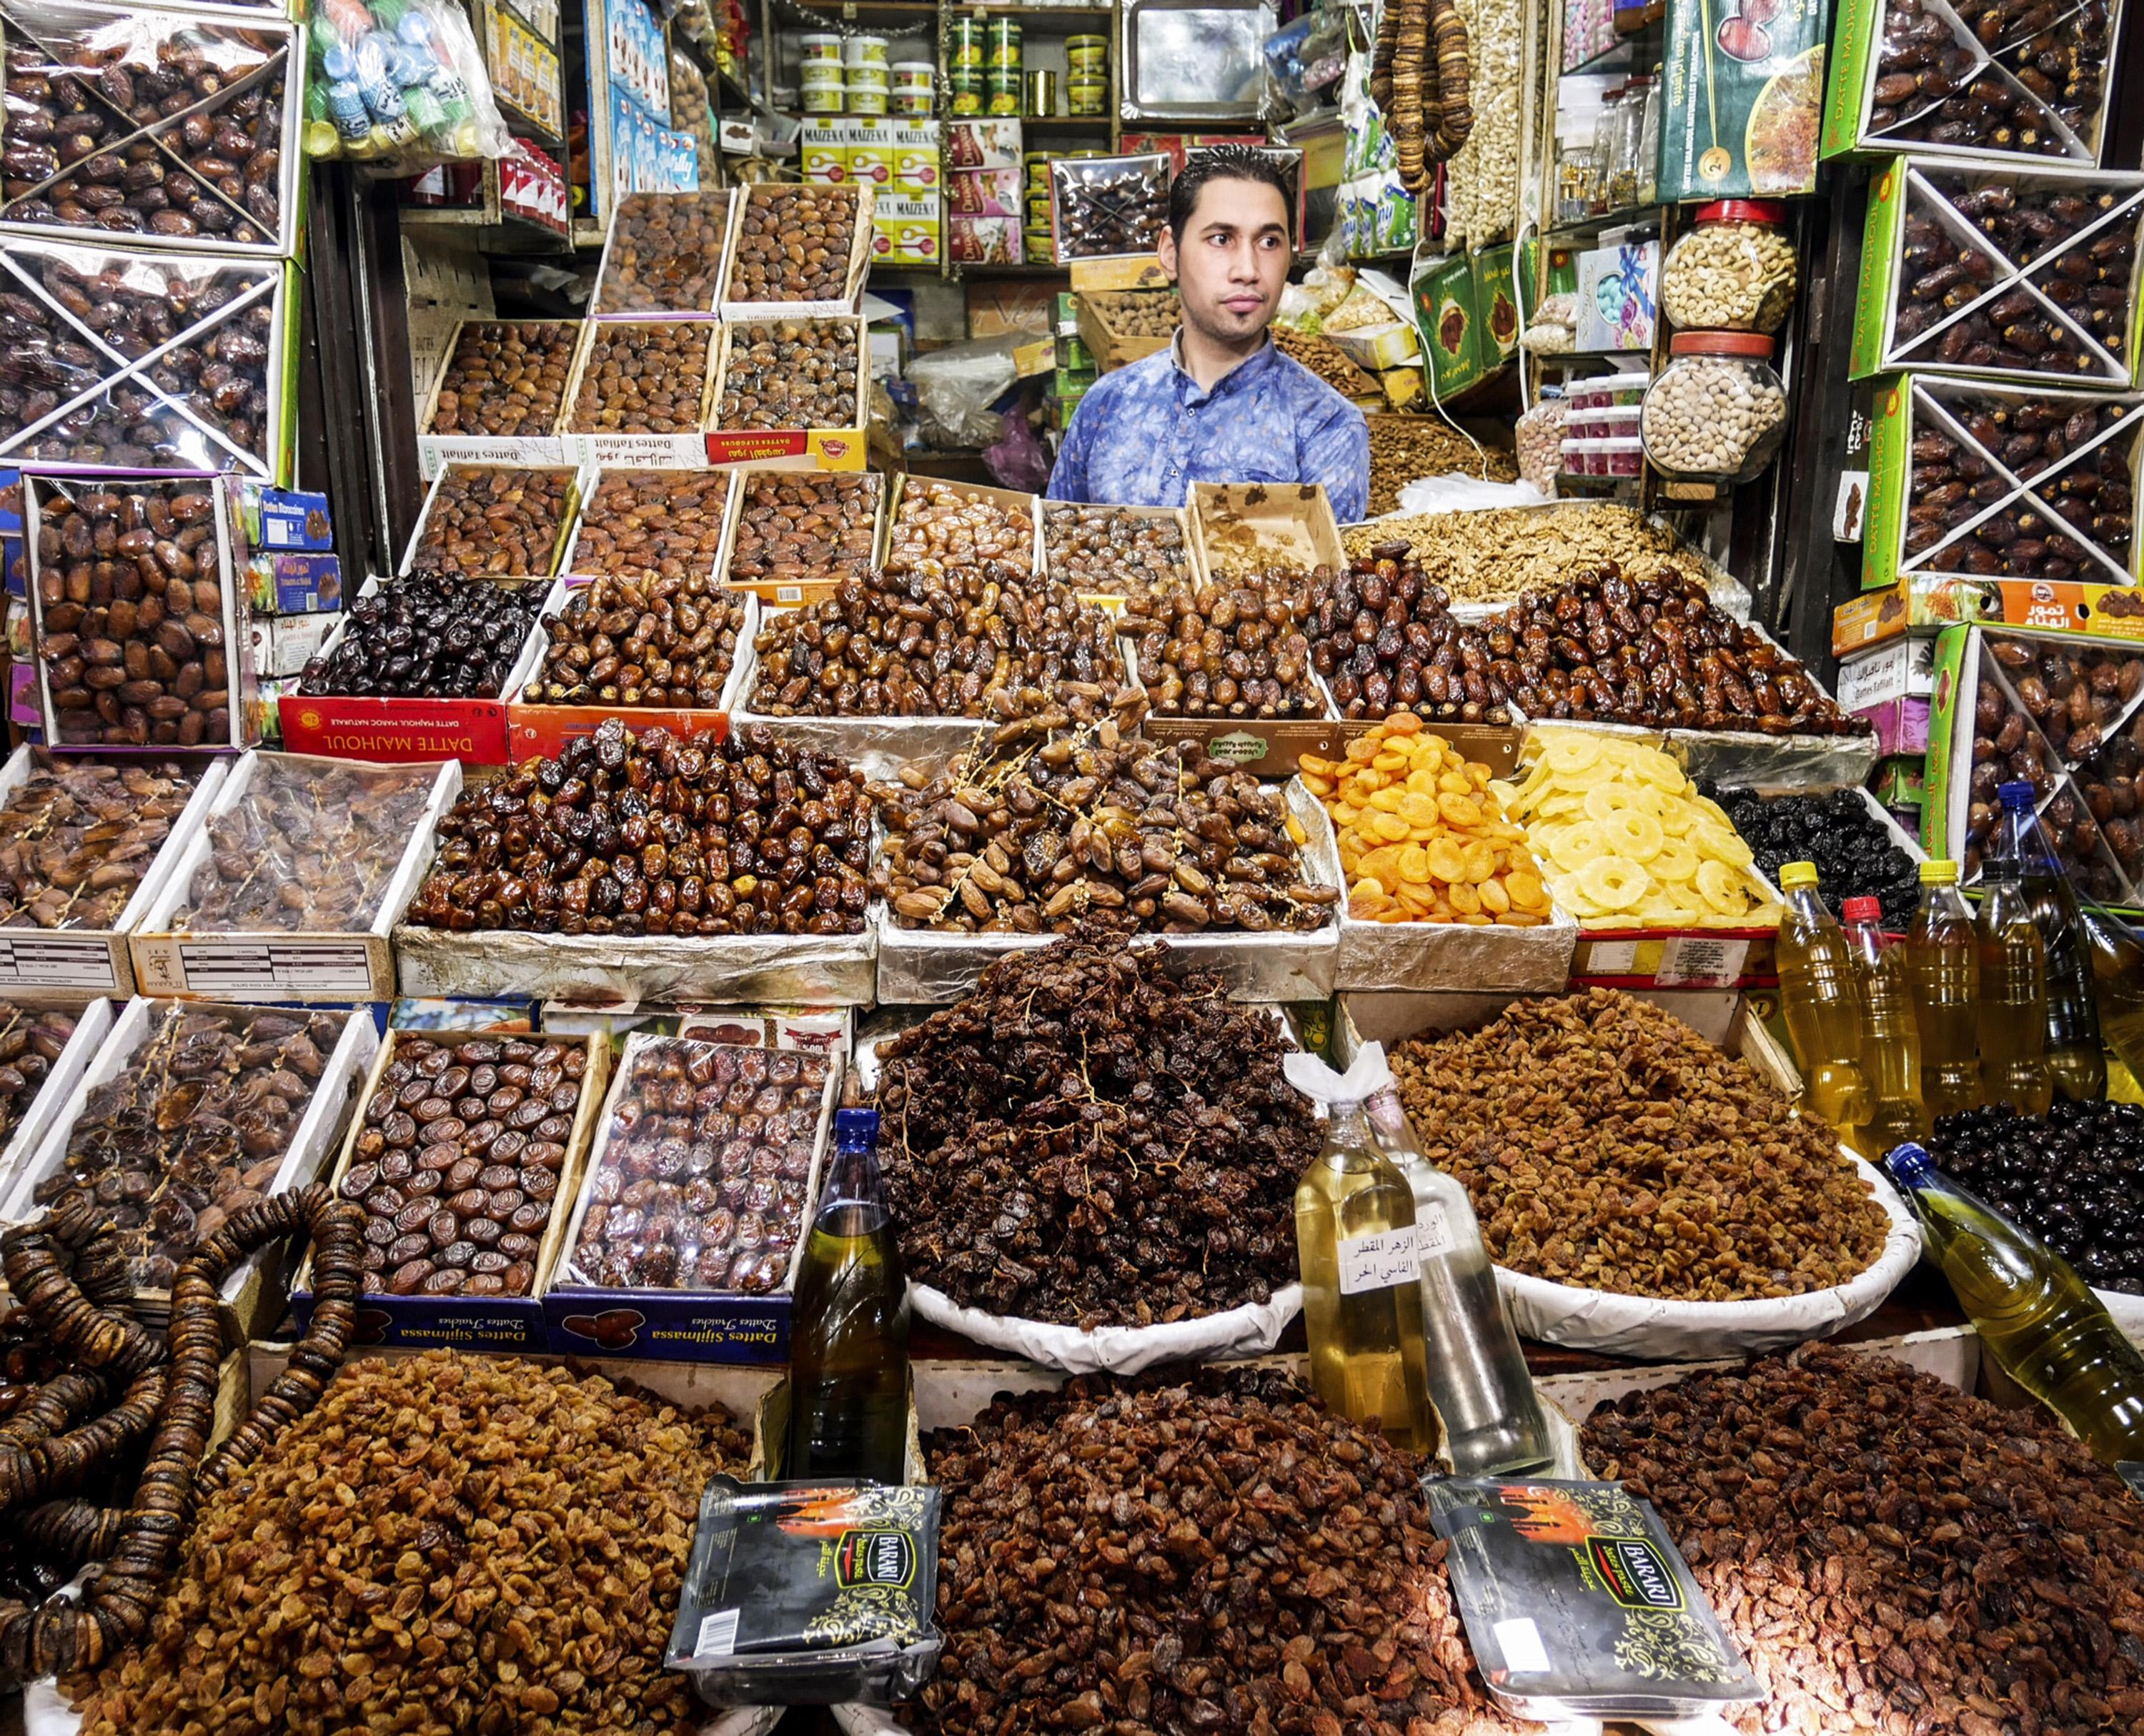 In Fez, Morocco, an oasis amid the bedlam of the ancient